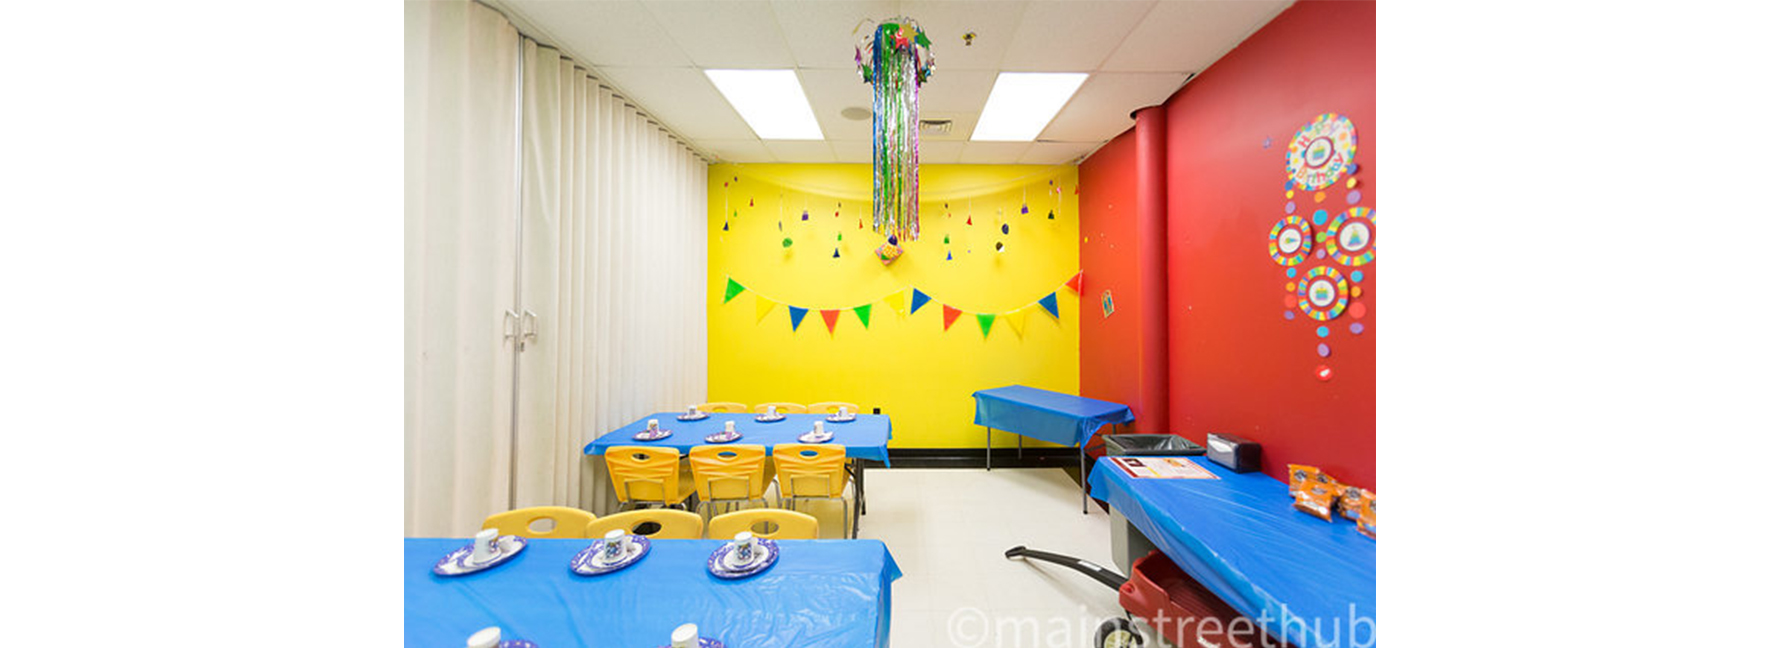 Party Rooms are available for Kids' Birthday Parties! Check out our Parties Page for more info.